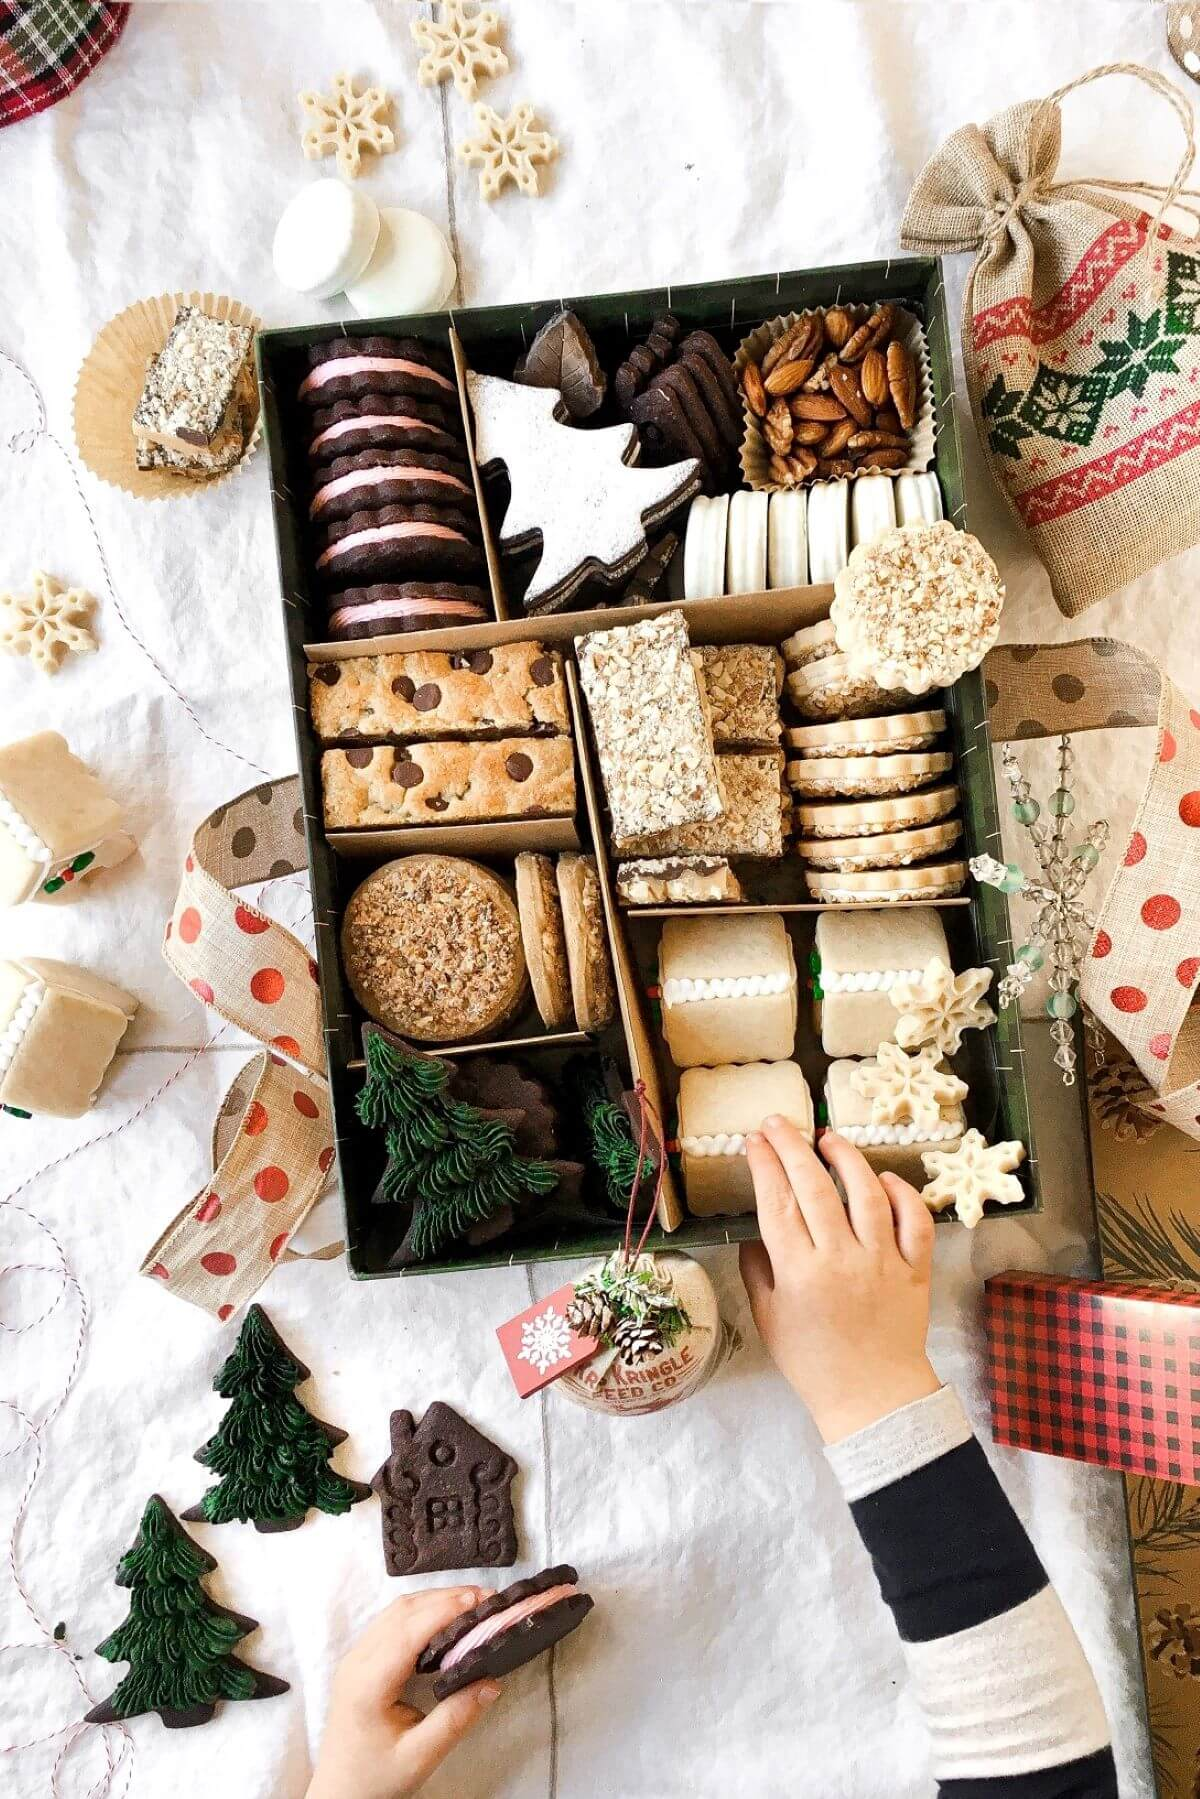 A box full of Christmas cookies.